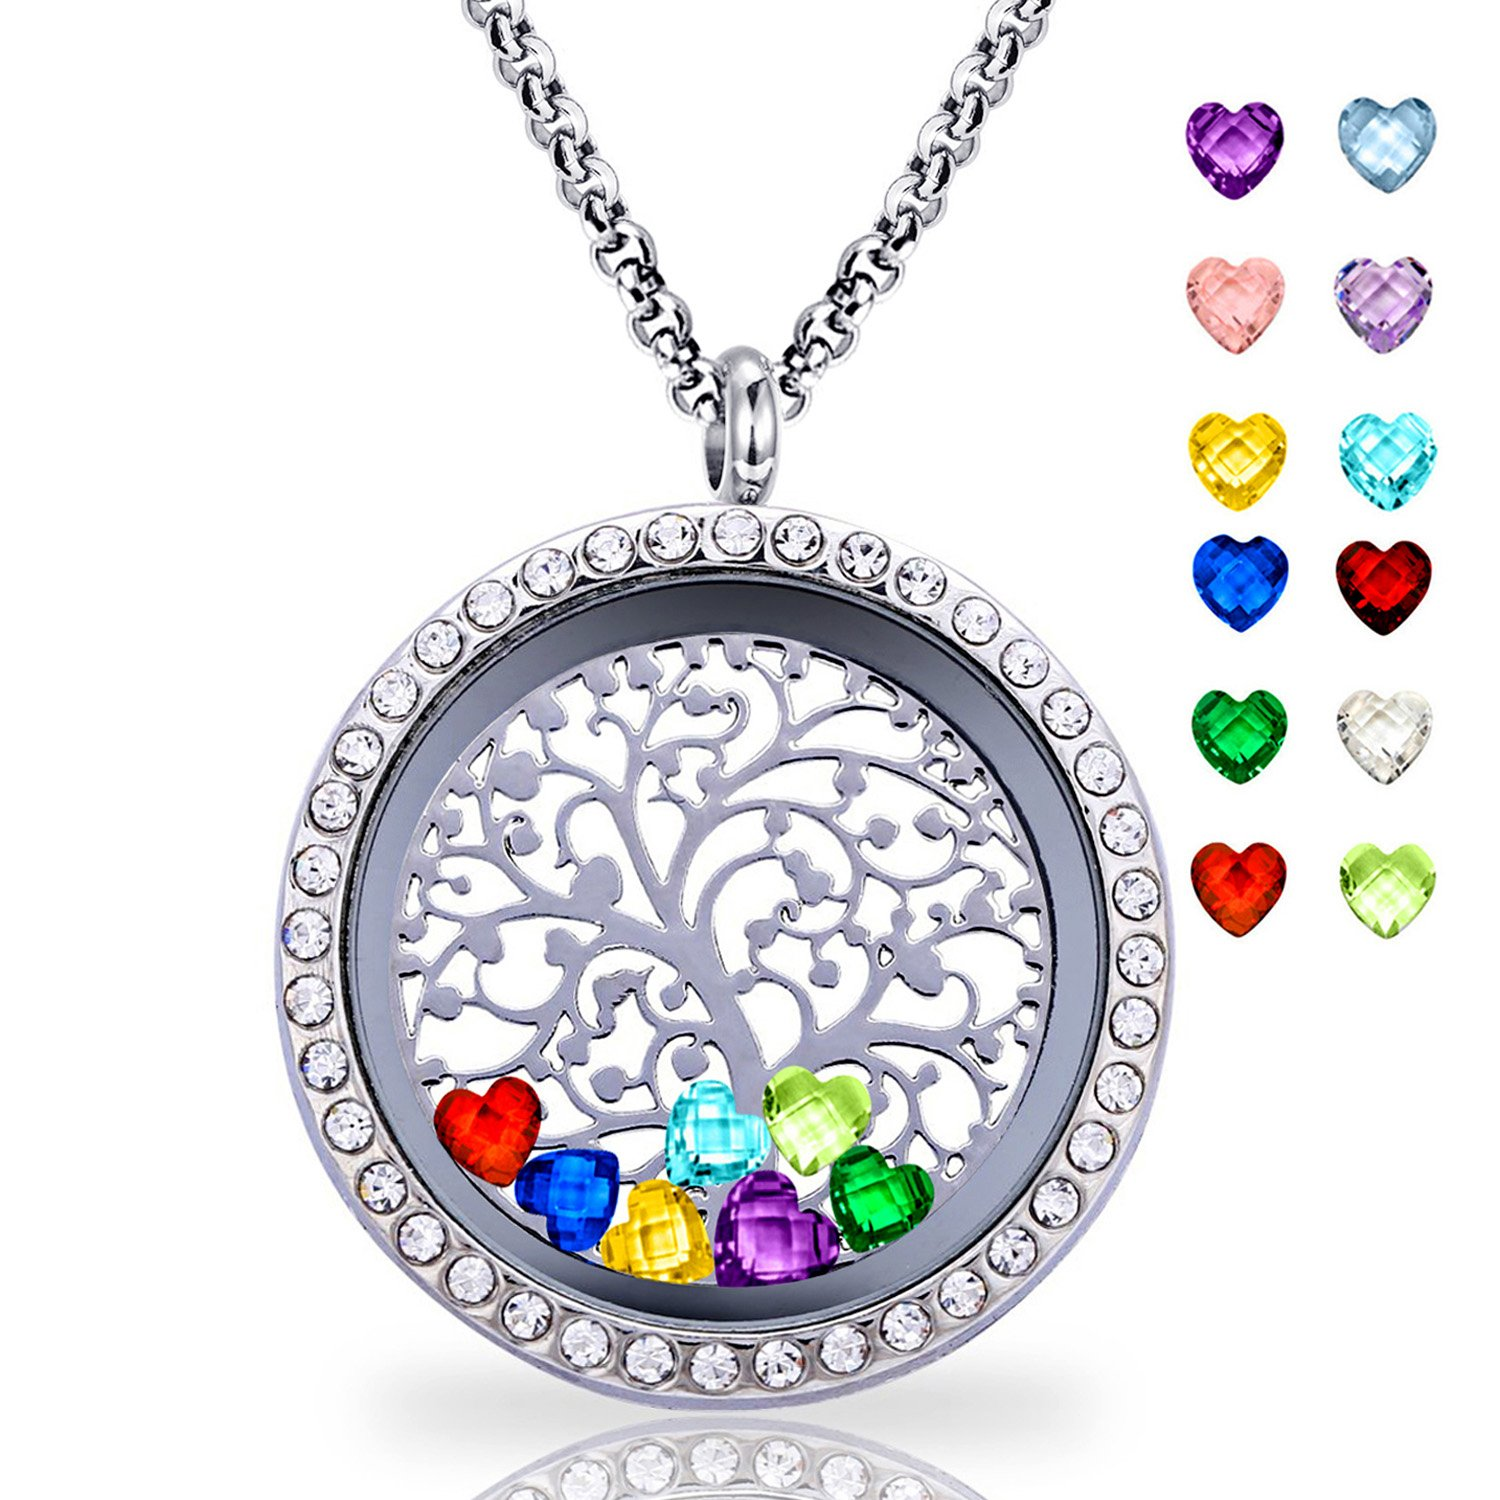 Amazon floating living memory locket pendant necklace family amazon floating living memory locket pendant necklace family tree of life necklace all birthstone charms include family tree cz locket jewelry mozeypictures Image collections